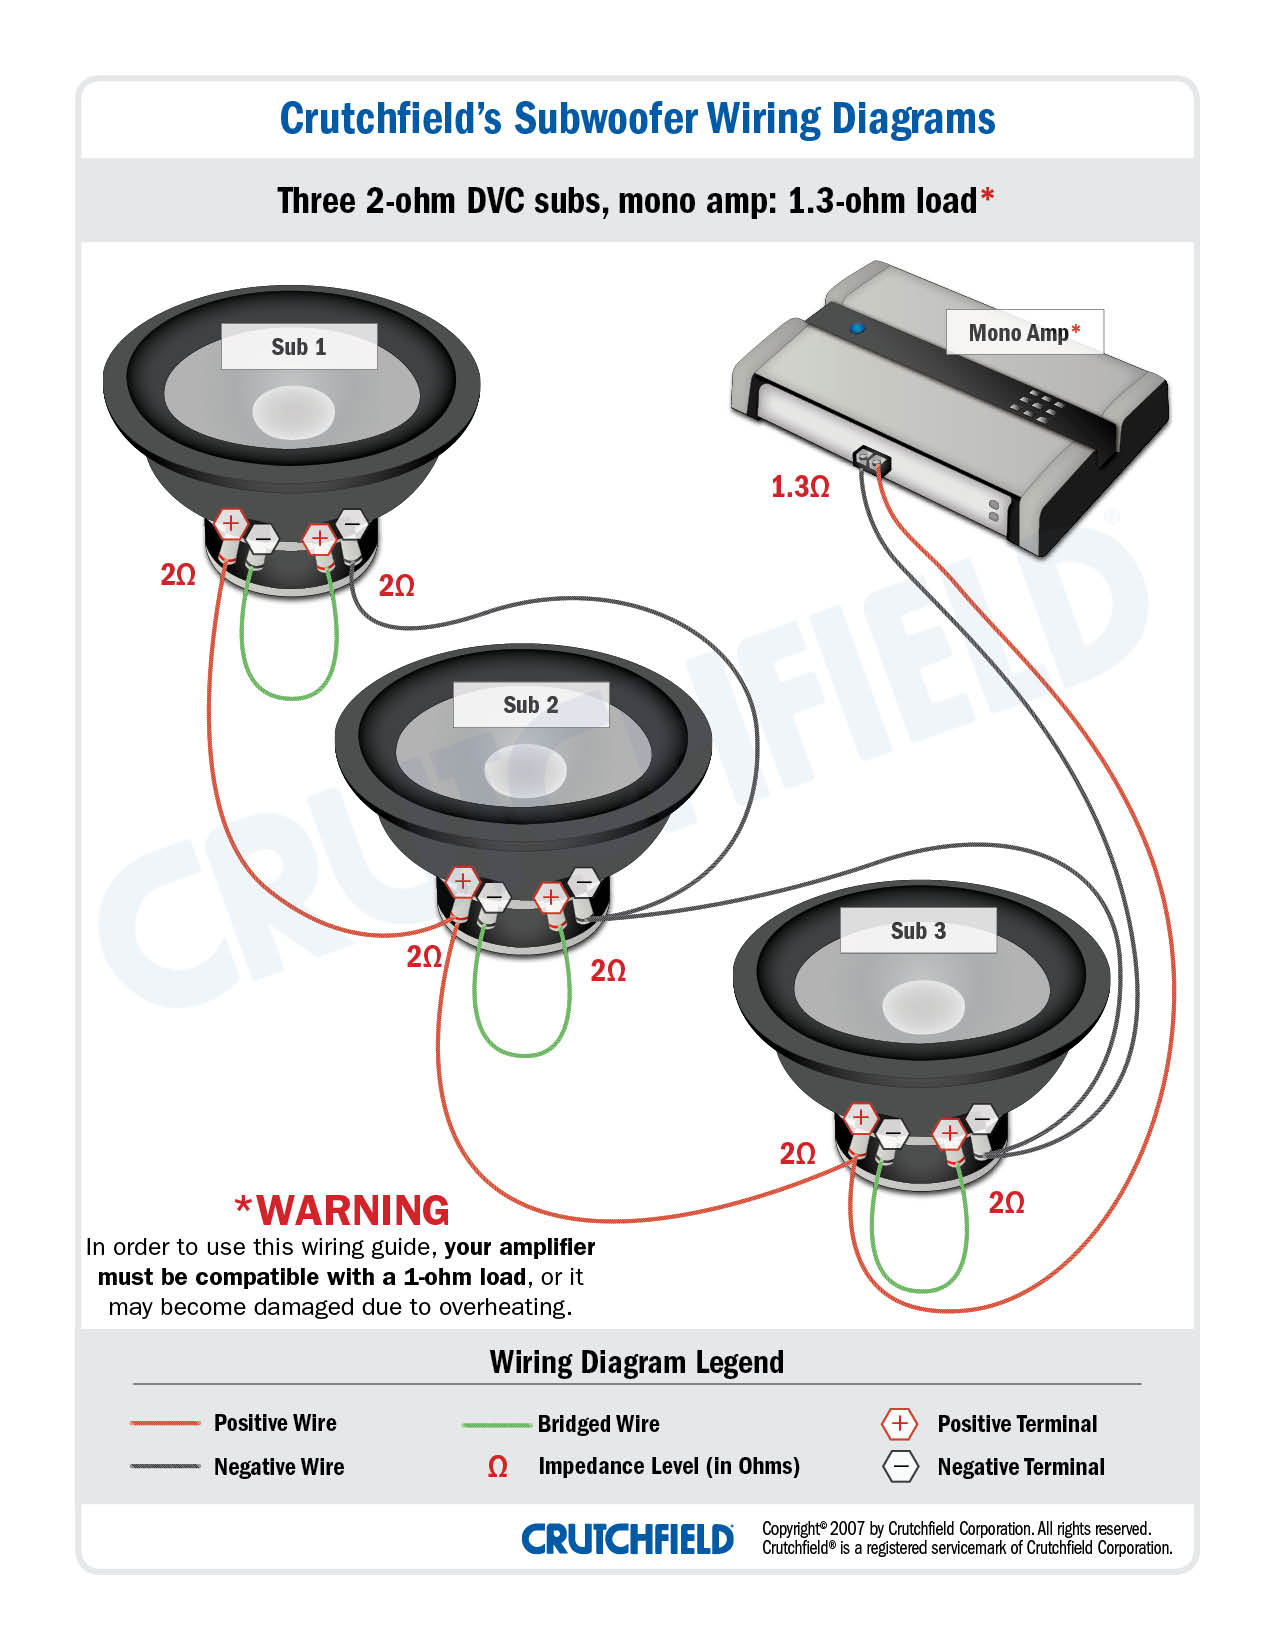 3 DVC 2 ohm mono low imp subwoofer wiring diagrams infinity reference 611a wiring diagram at bayanpartner.co